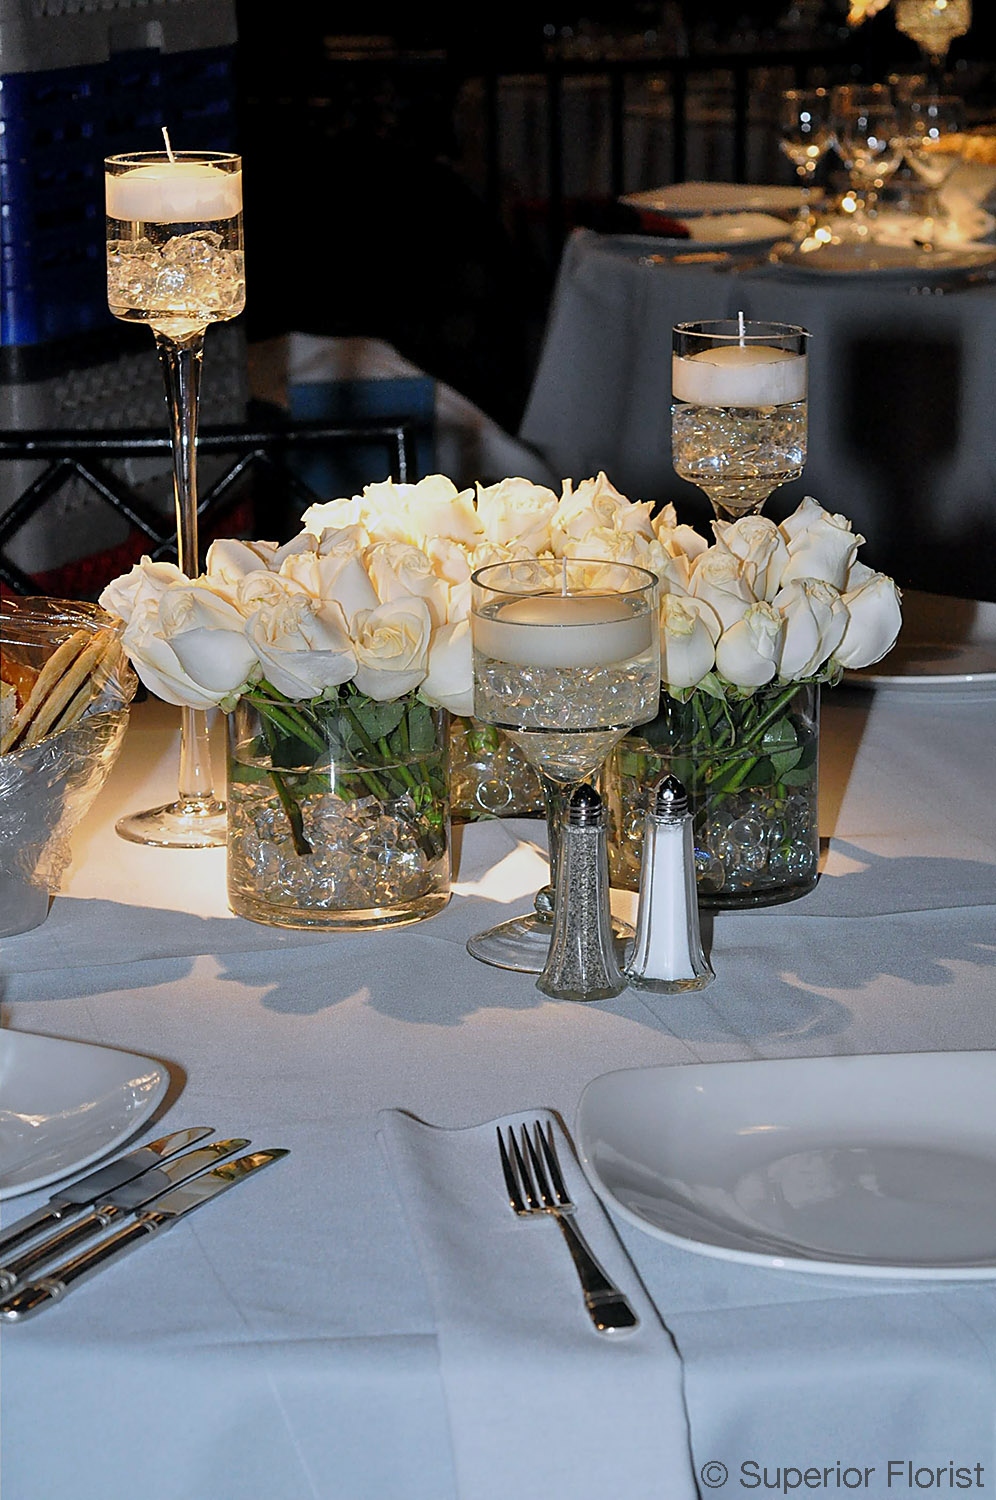 Superior Florist – Centerpieces:  Group of three, glass cylinder vases of white roses. Vases matched with three candleholders each with a floating candle.